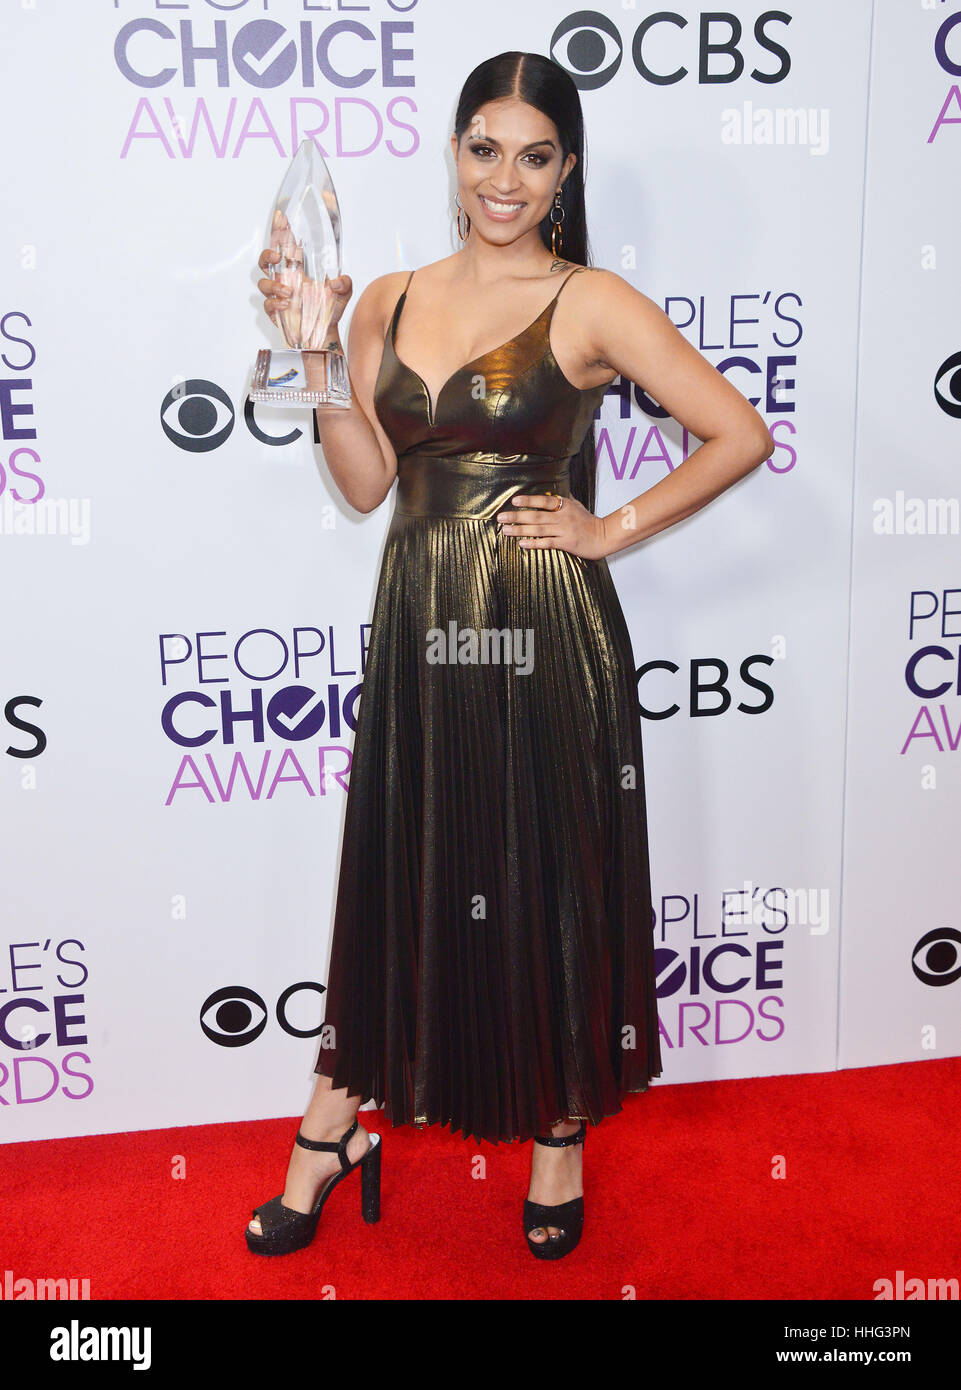 Lilly Singh 269 arrivant au People's Choice Awards 2017 au Theatre de Los Angeles. 18 janvier, 2017. Photo Stock